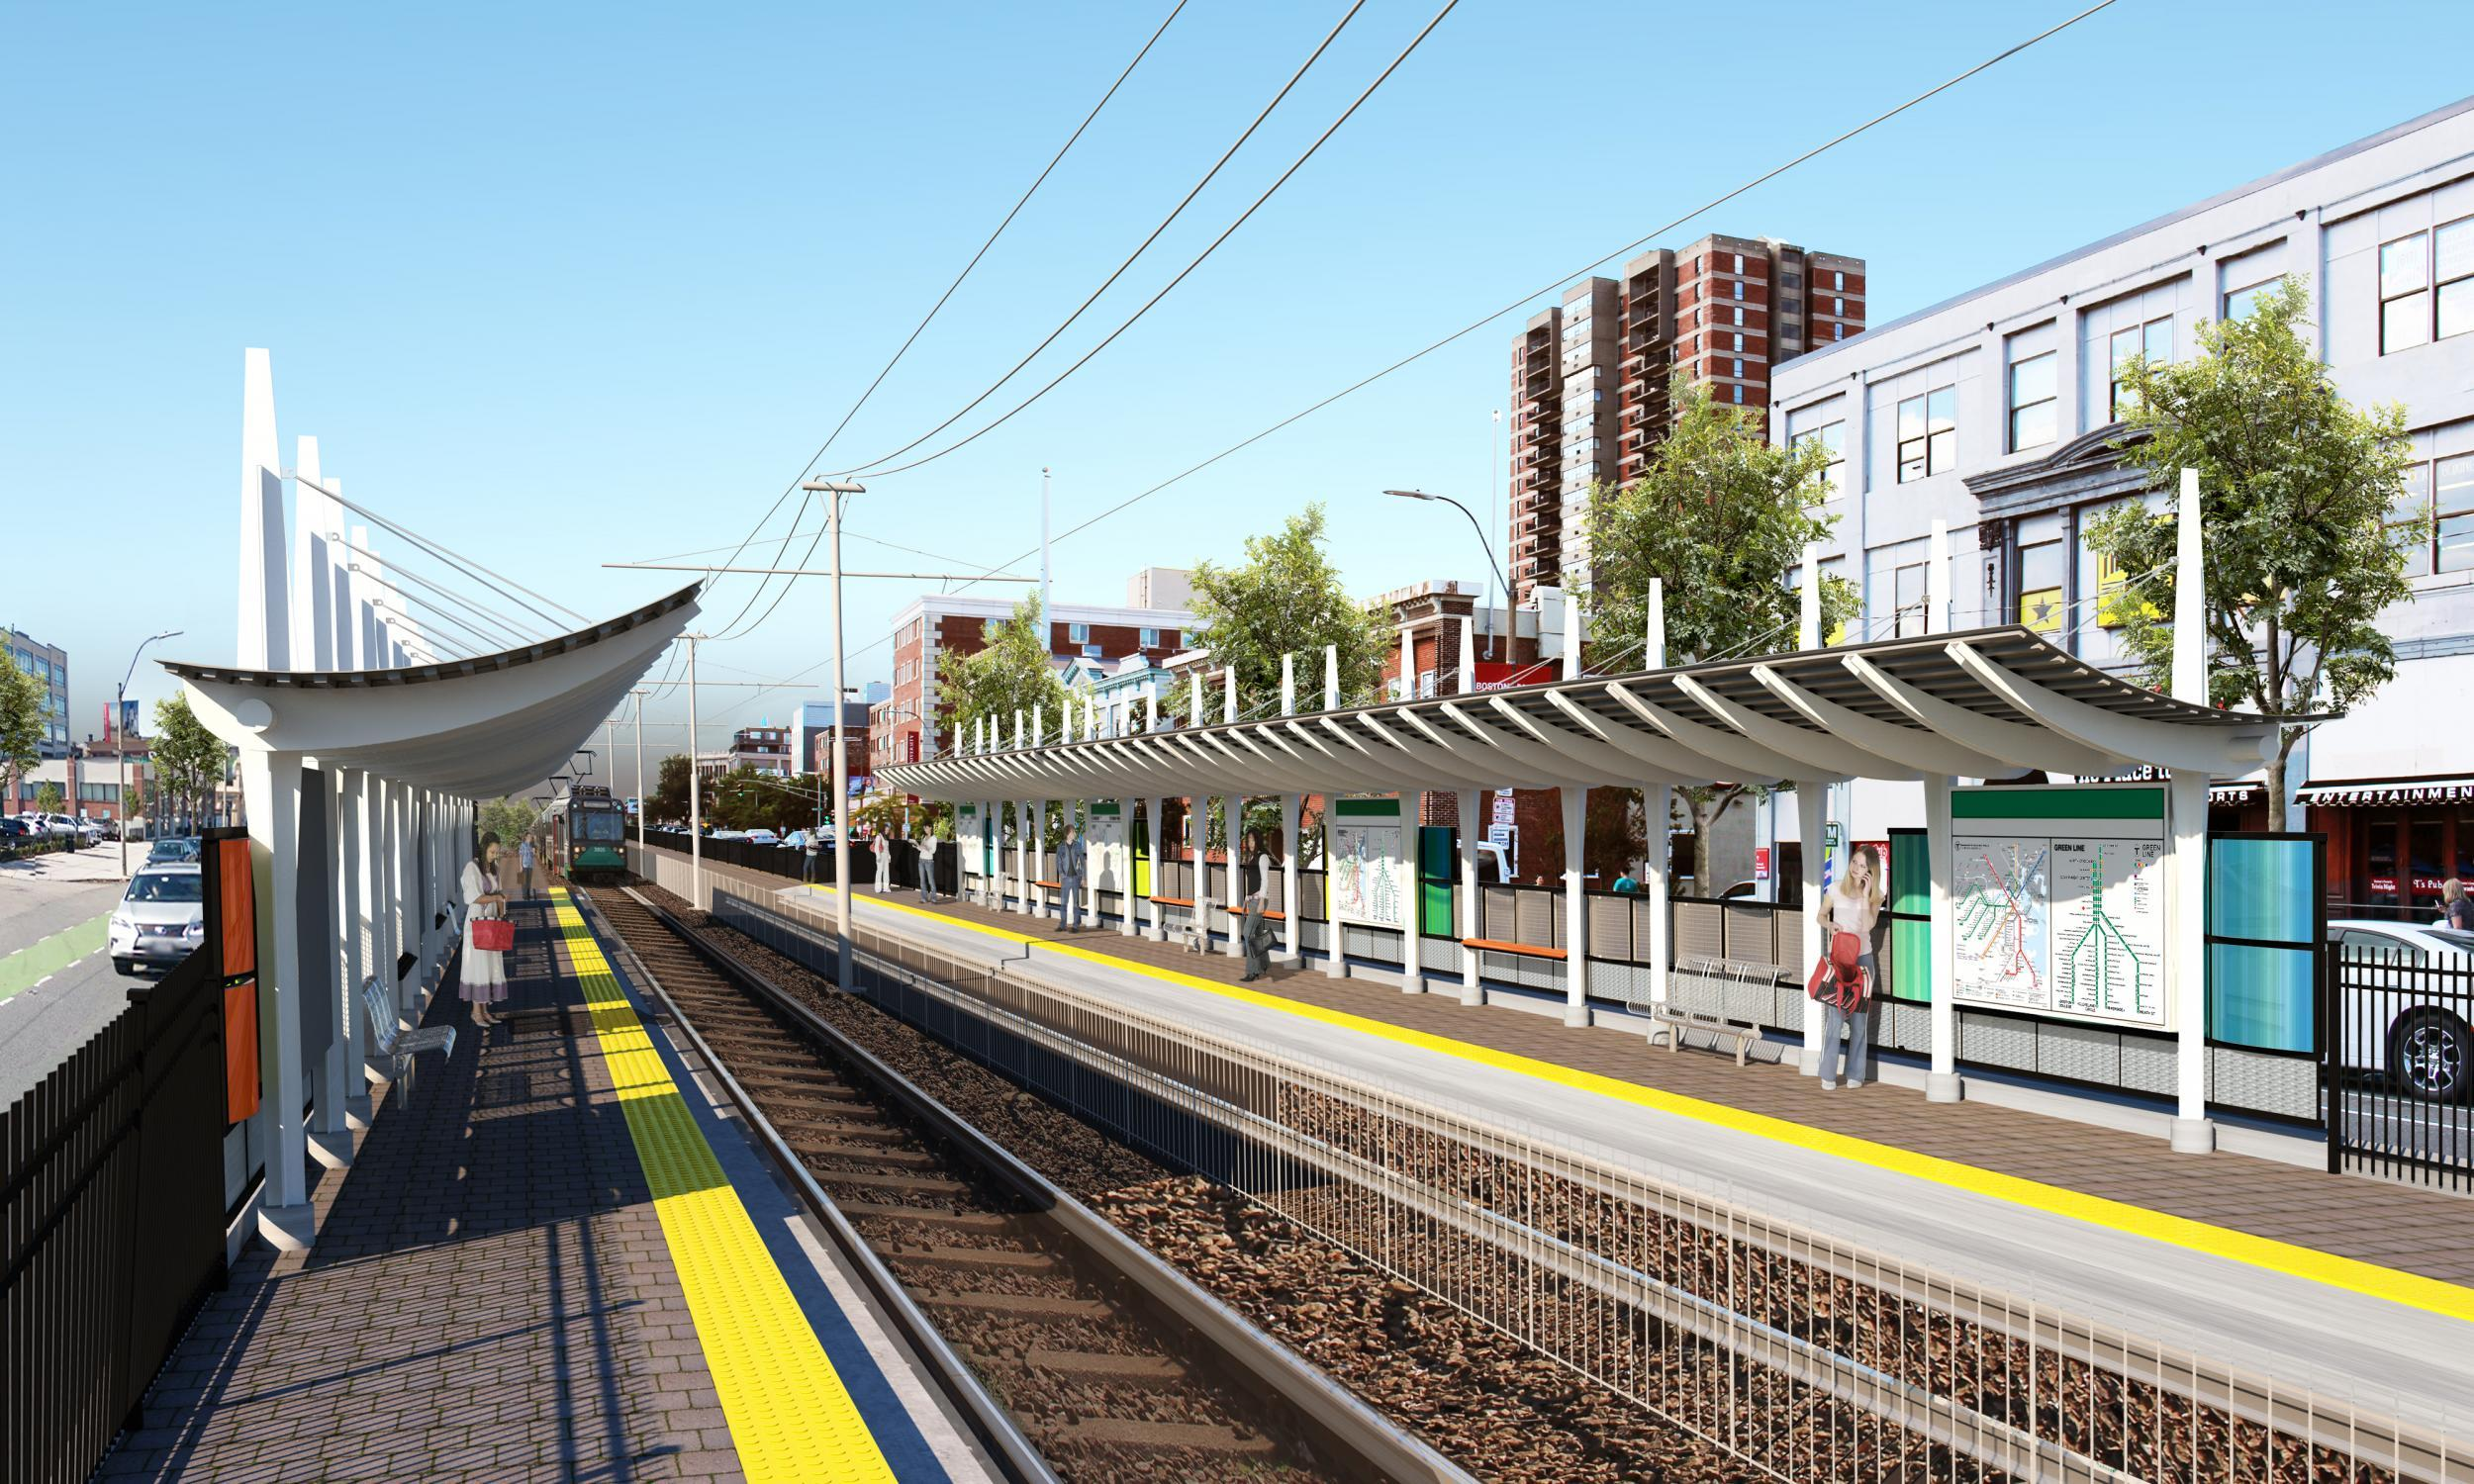 Rendering of the proposed station between Harry Agganis Way and Babock St, with a view of the platform.